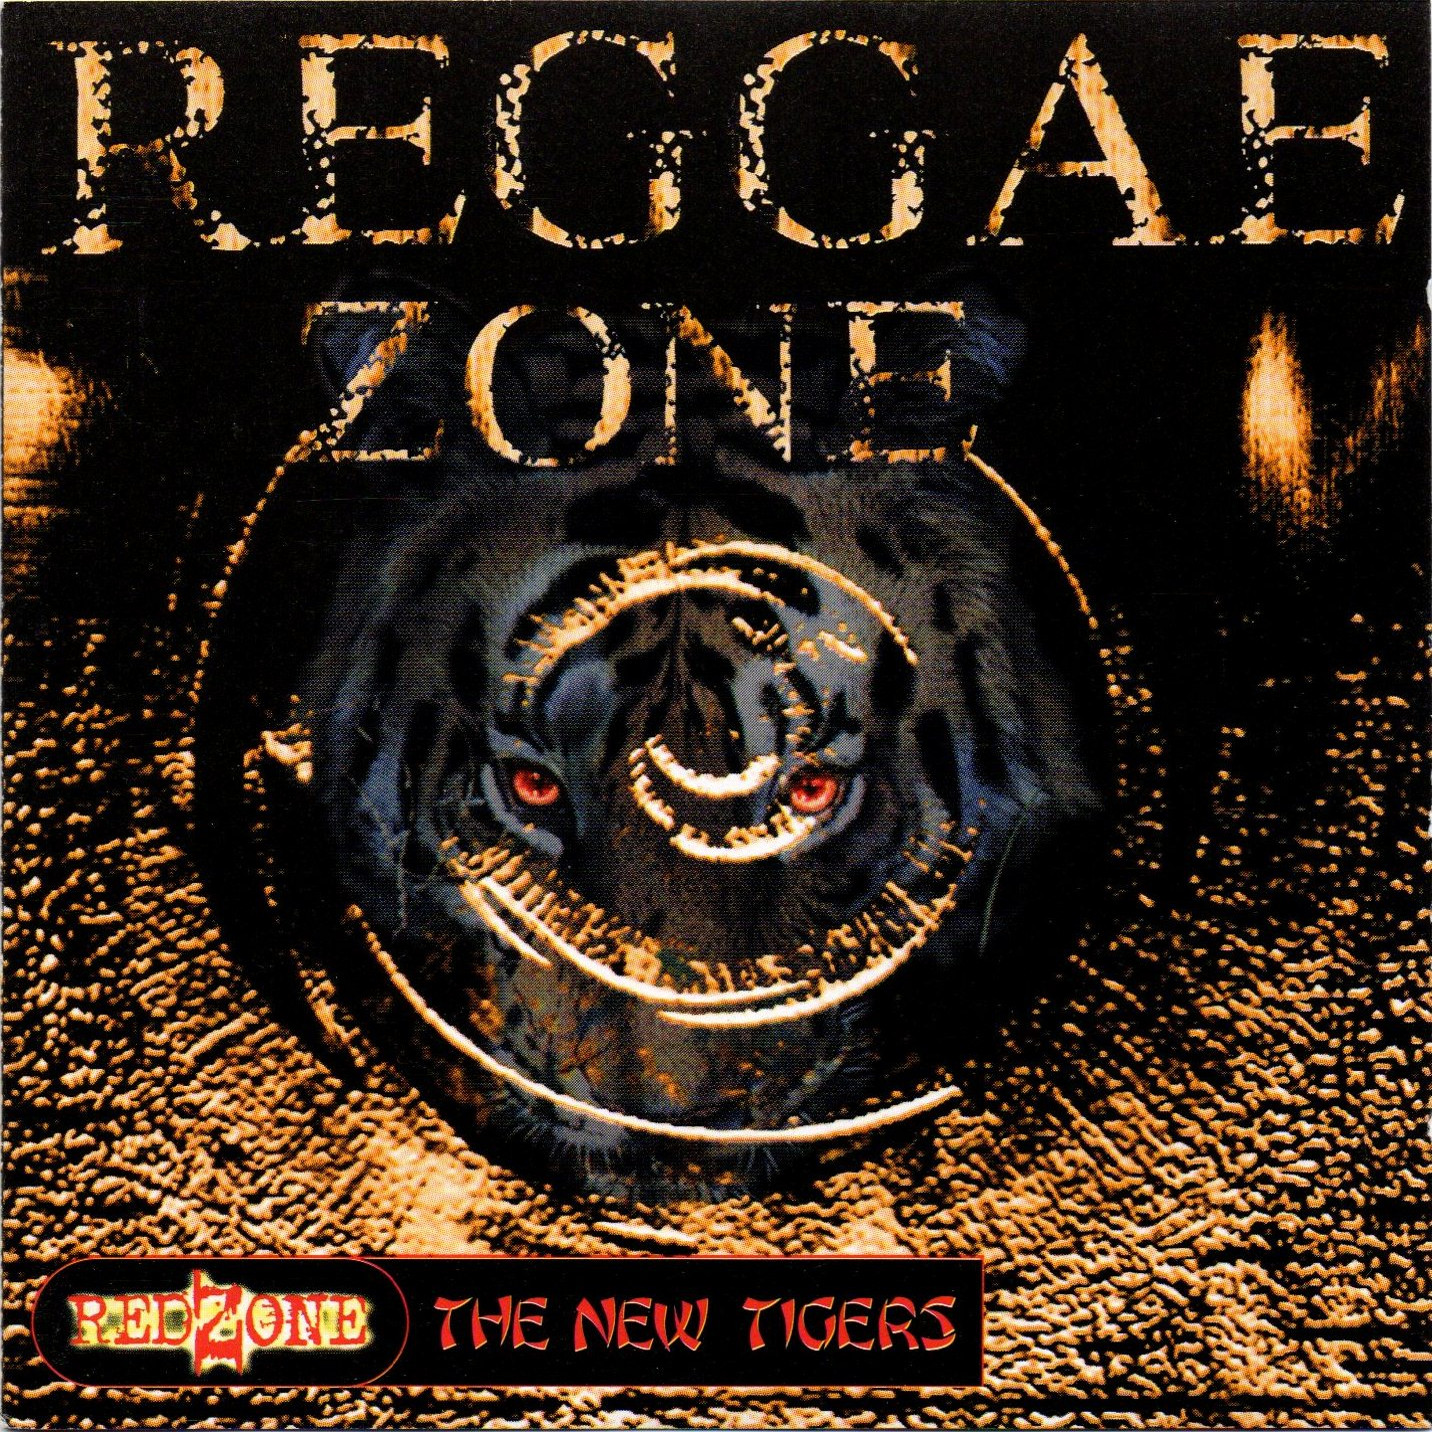 Reggae Zone : The New Tigers